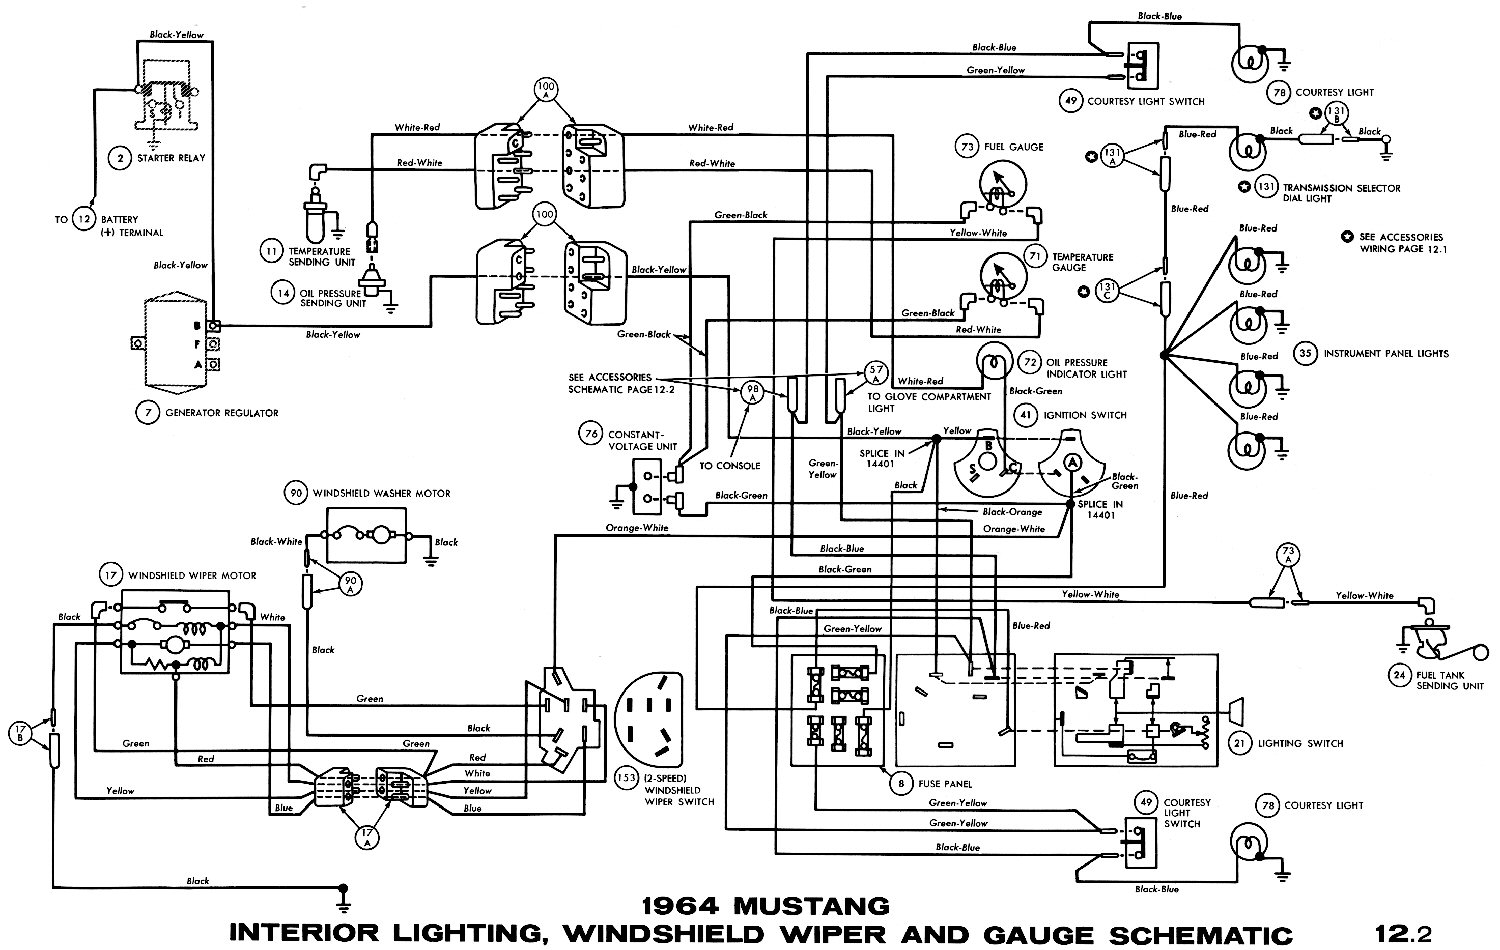 1964k 1964 mustang wiring diagrams average joe restoration 1970 mustang wiring diagram at alyssarenee.co